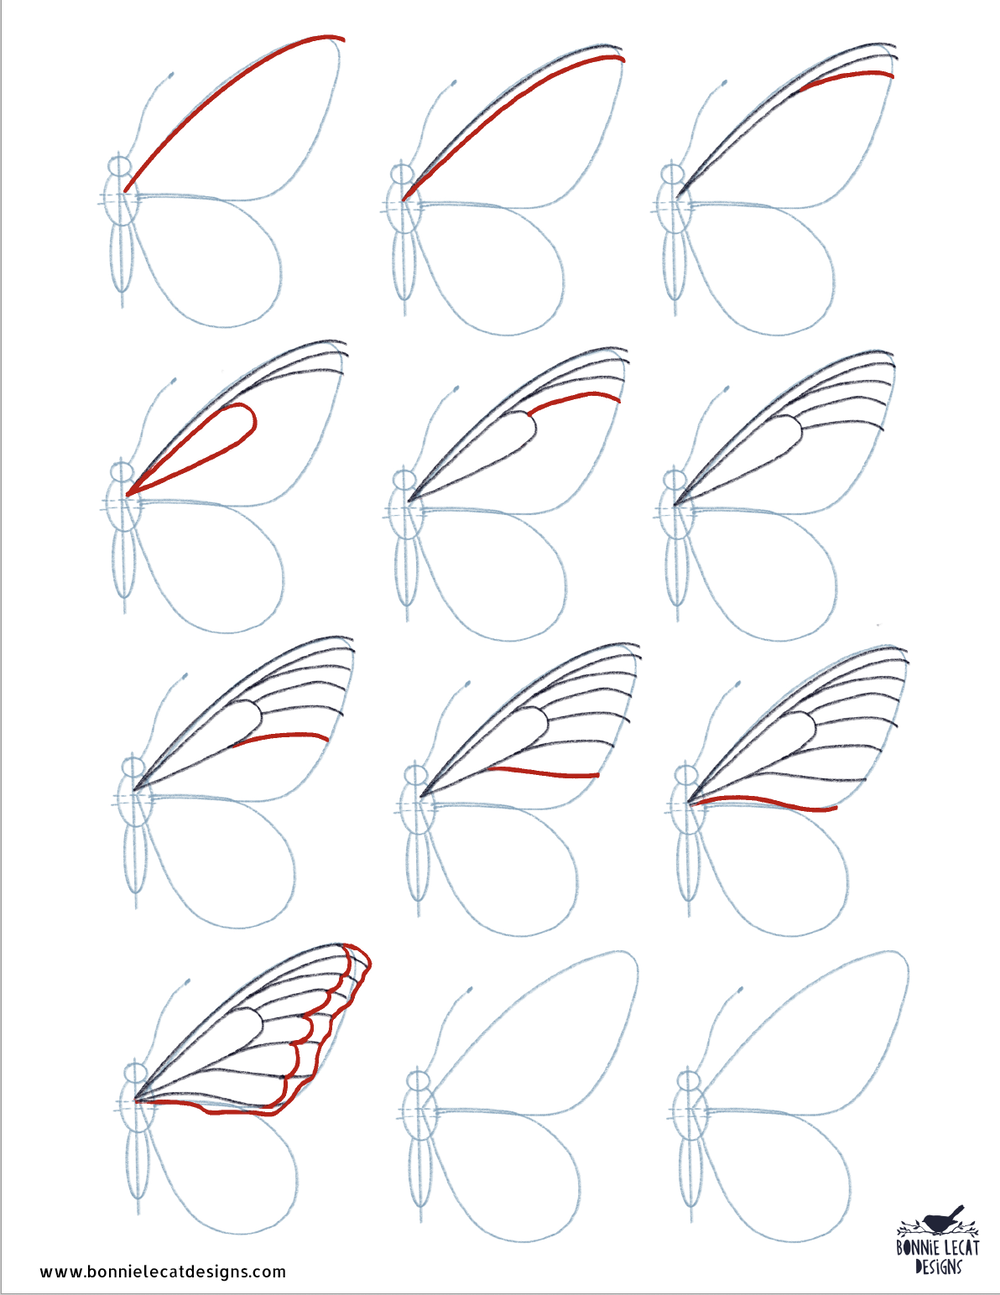 Finish the wing outline by going around the bottom triangle.